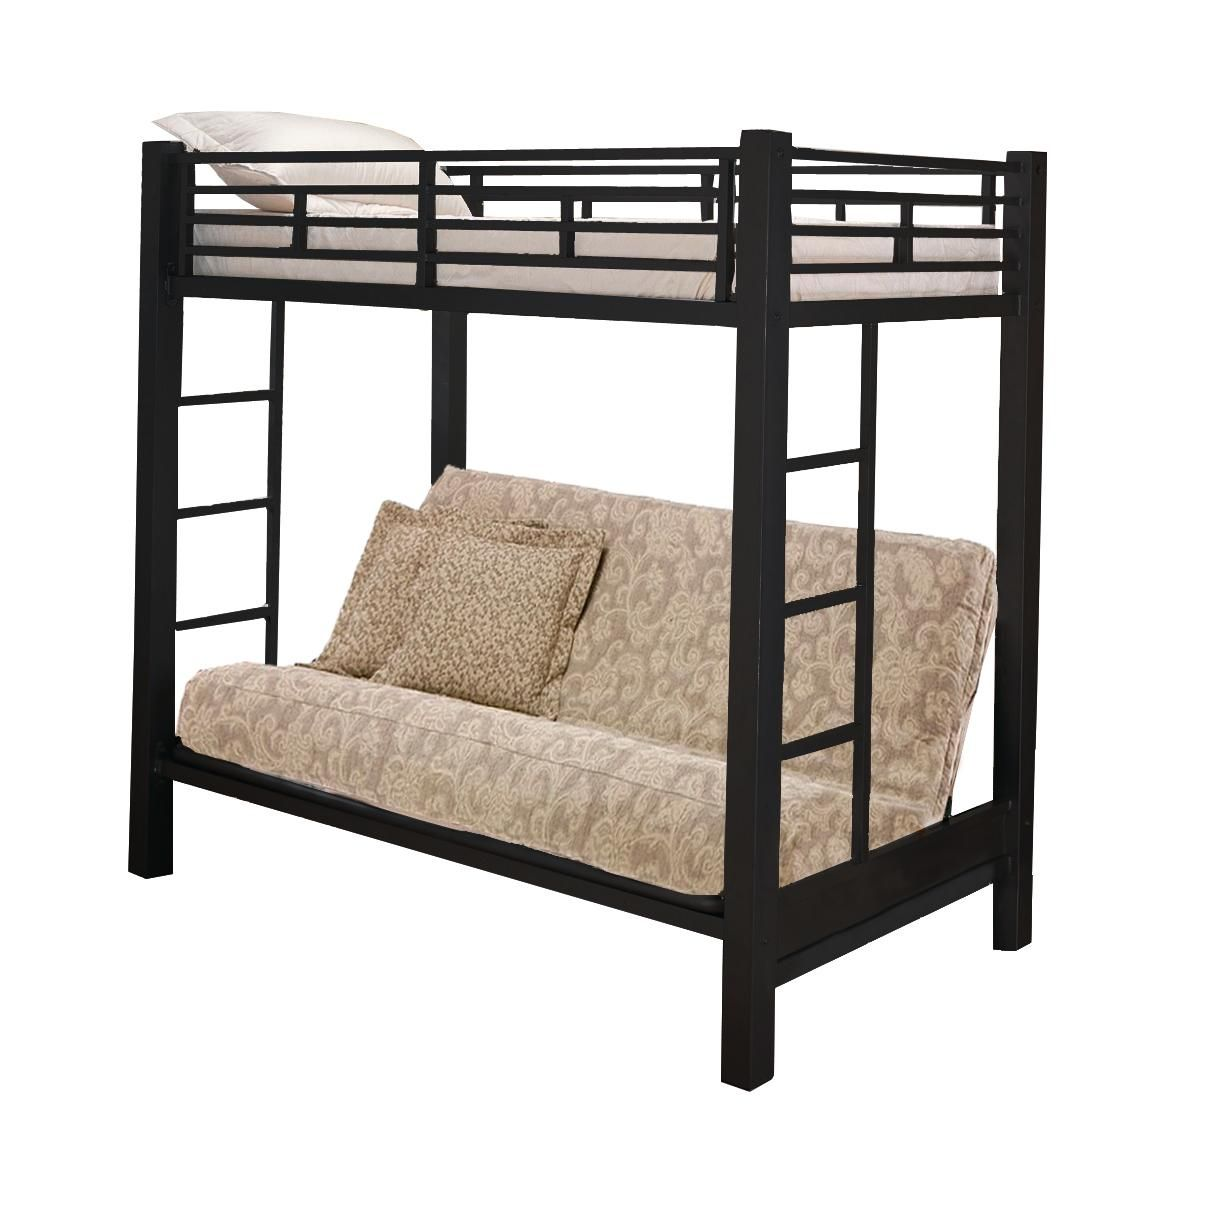 Full Size Bunk Bed with Sofa - For more Awesome Bunk Bed Ideas take ...